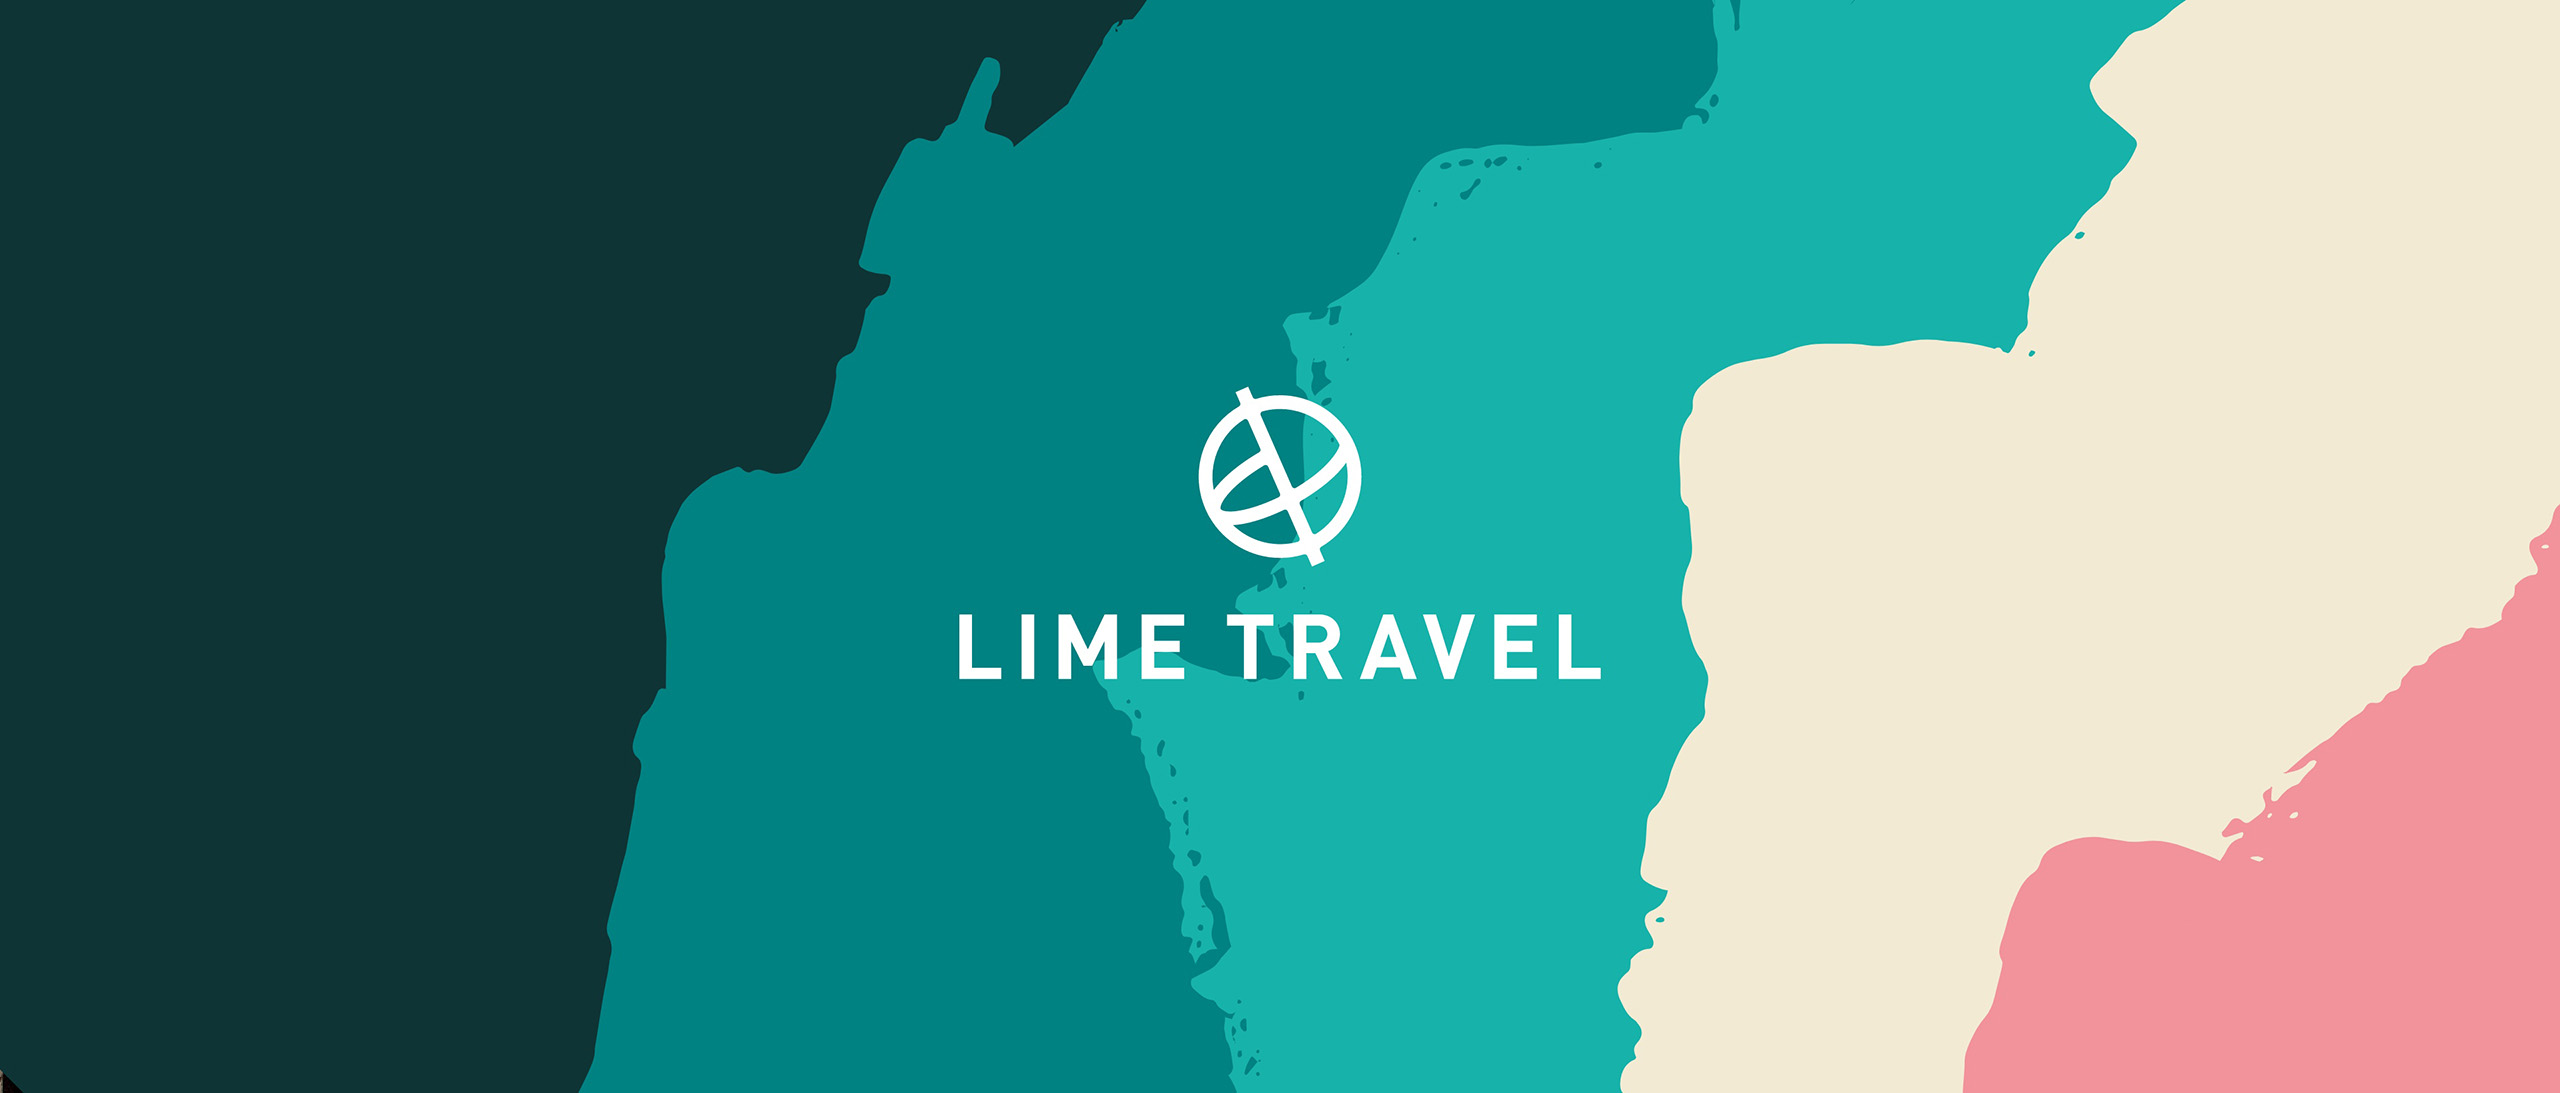 Lime Travel Identity